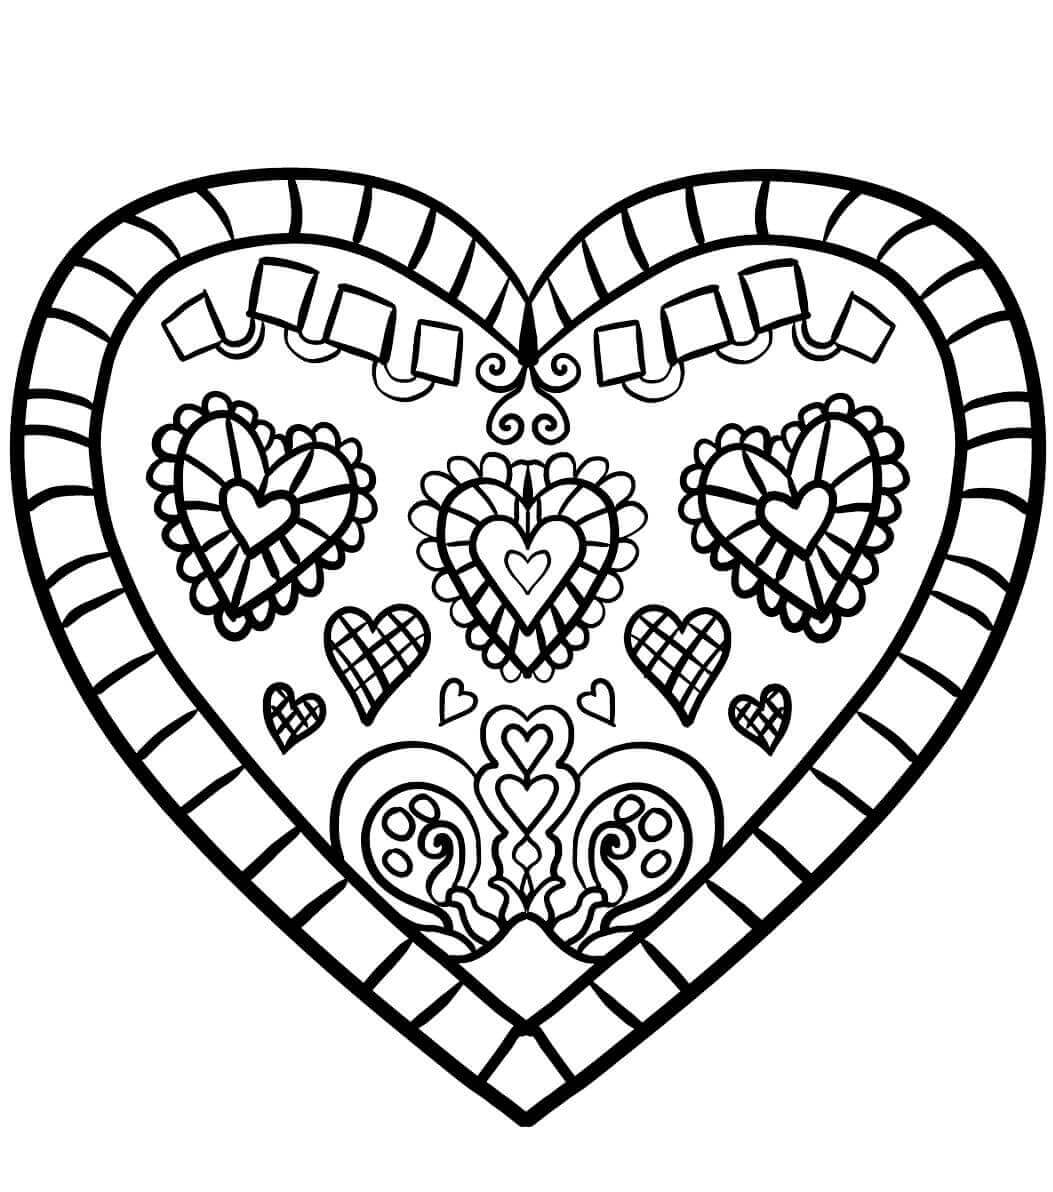 pictures of hearts to color coloring pages hearts free printable coloring pages for of hearts color to pictures